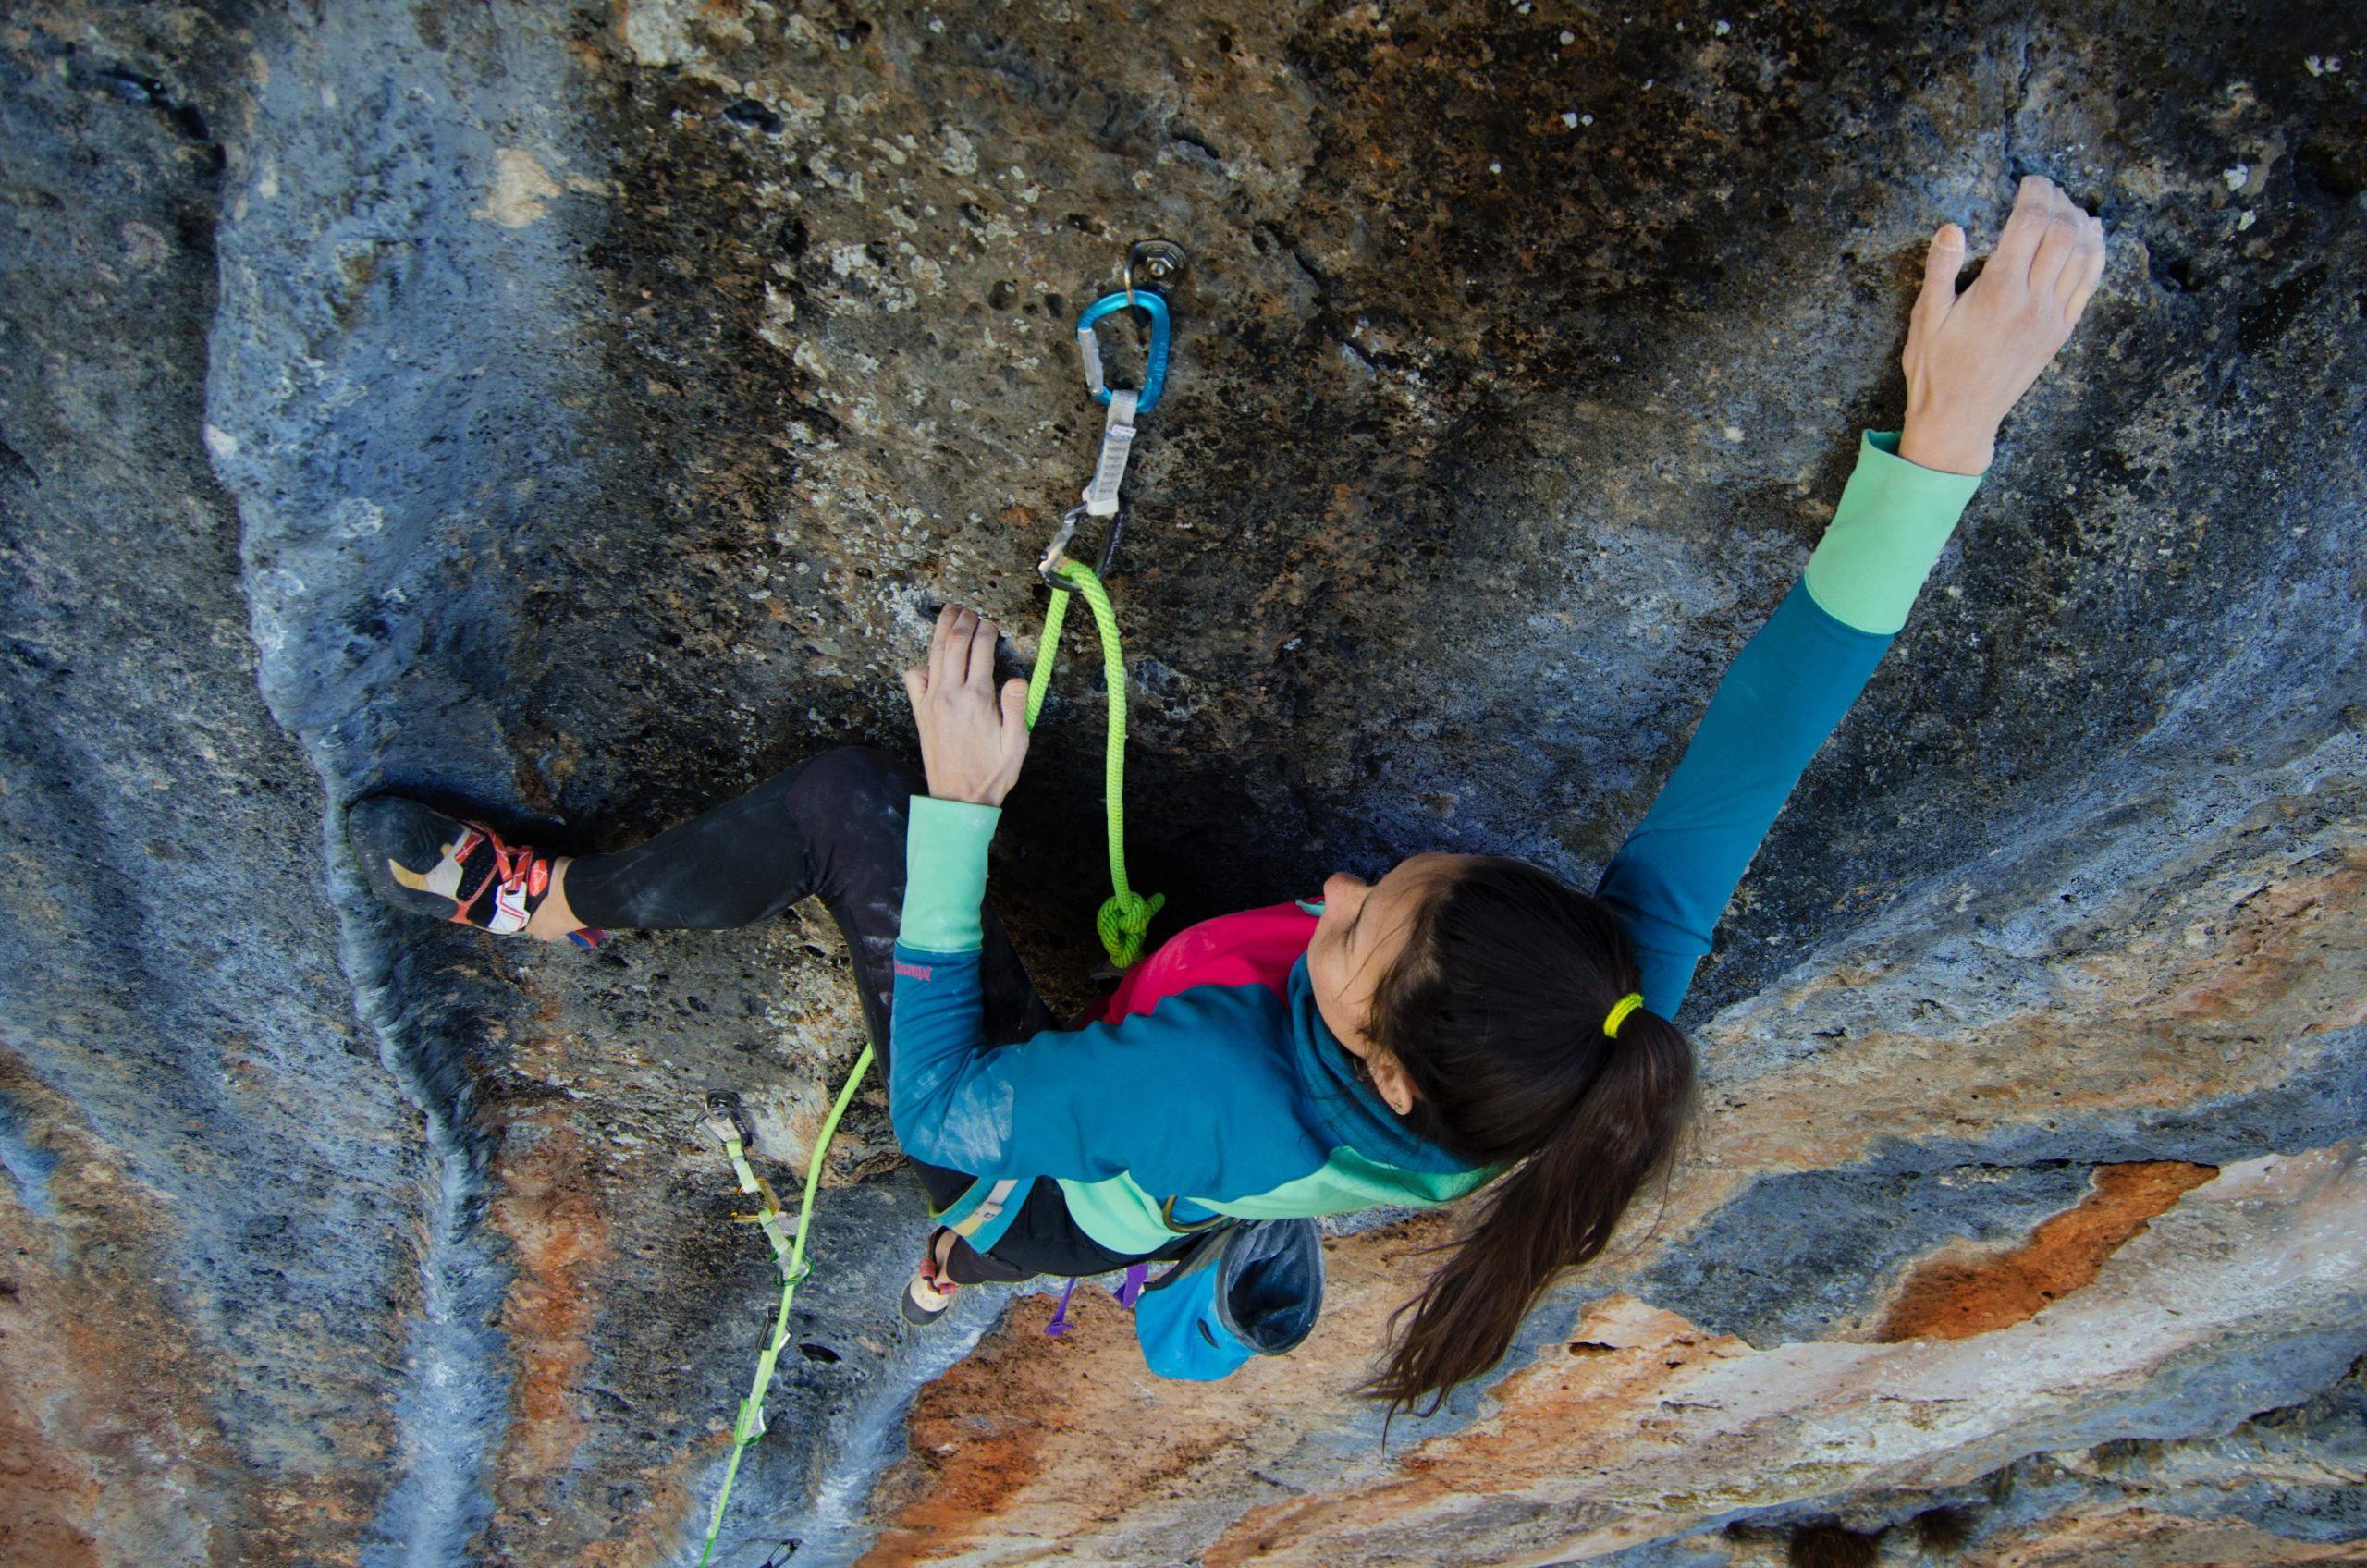 10 Best Rock Climbing Spots in Gainesville, FL